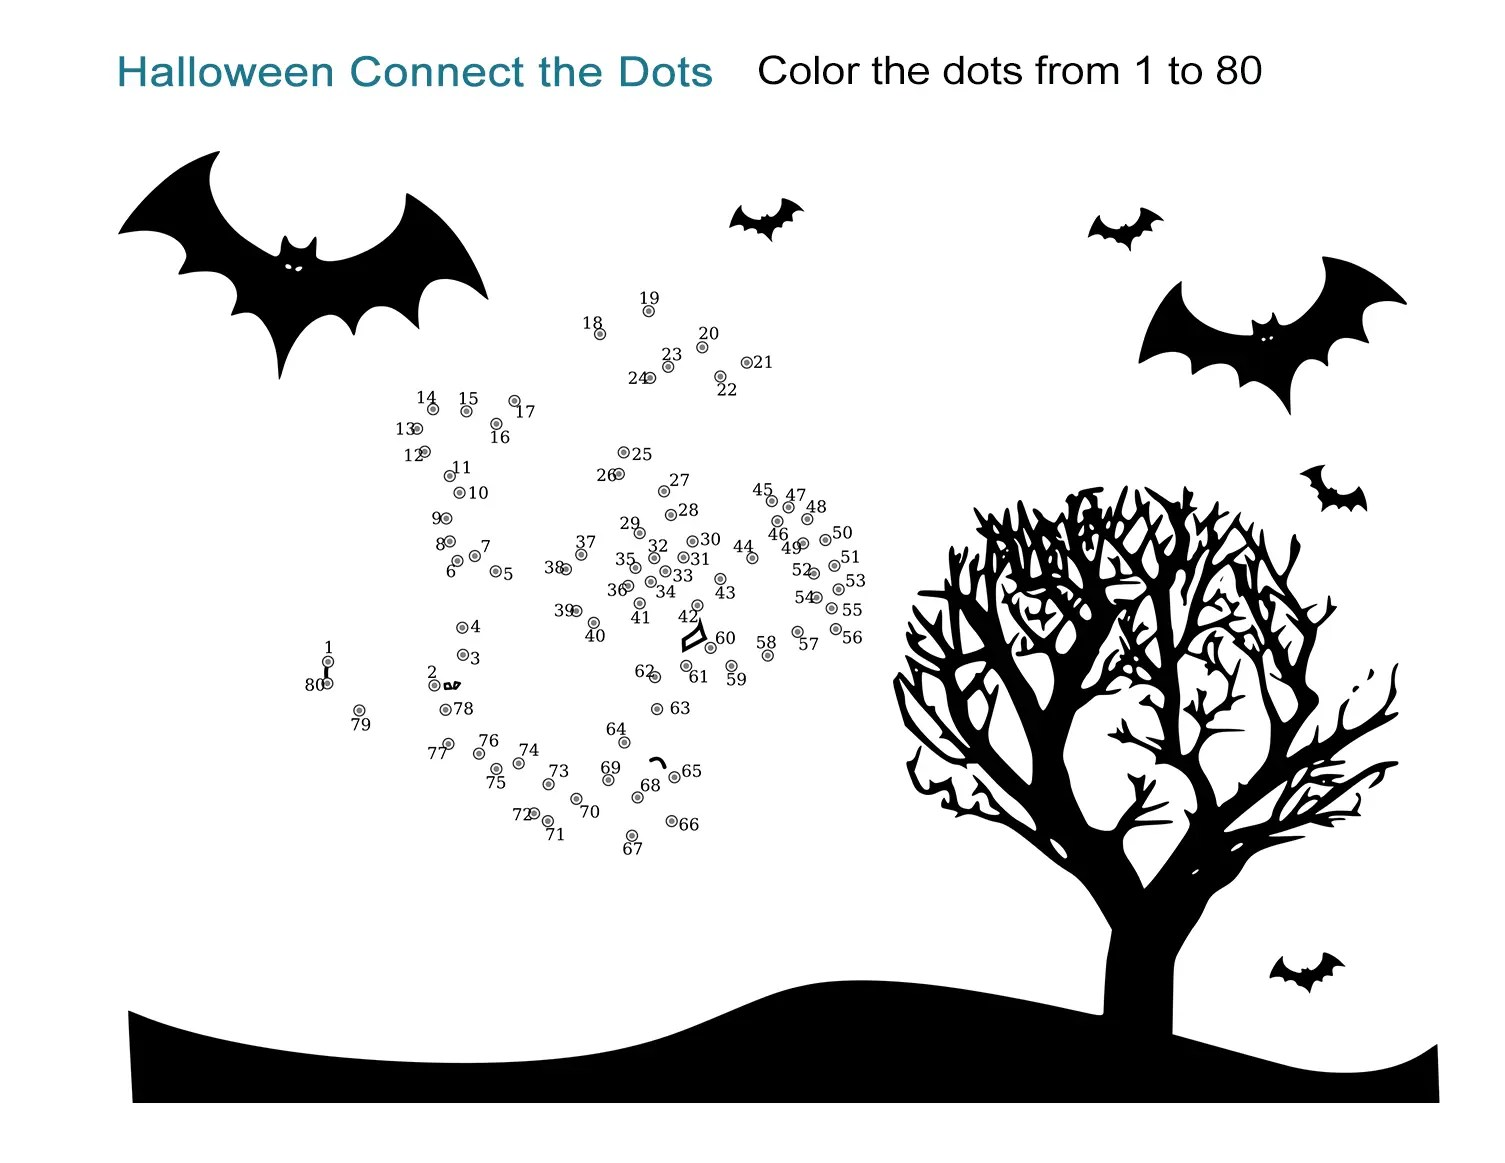 Halloween Connect The Dots Worksheet Easy Printable From 1 To 80